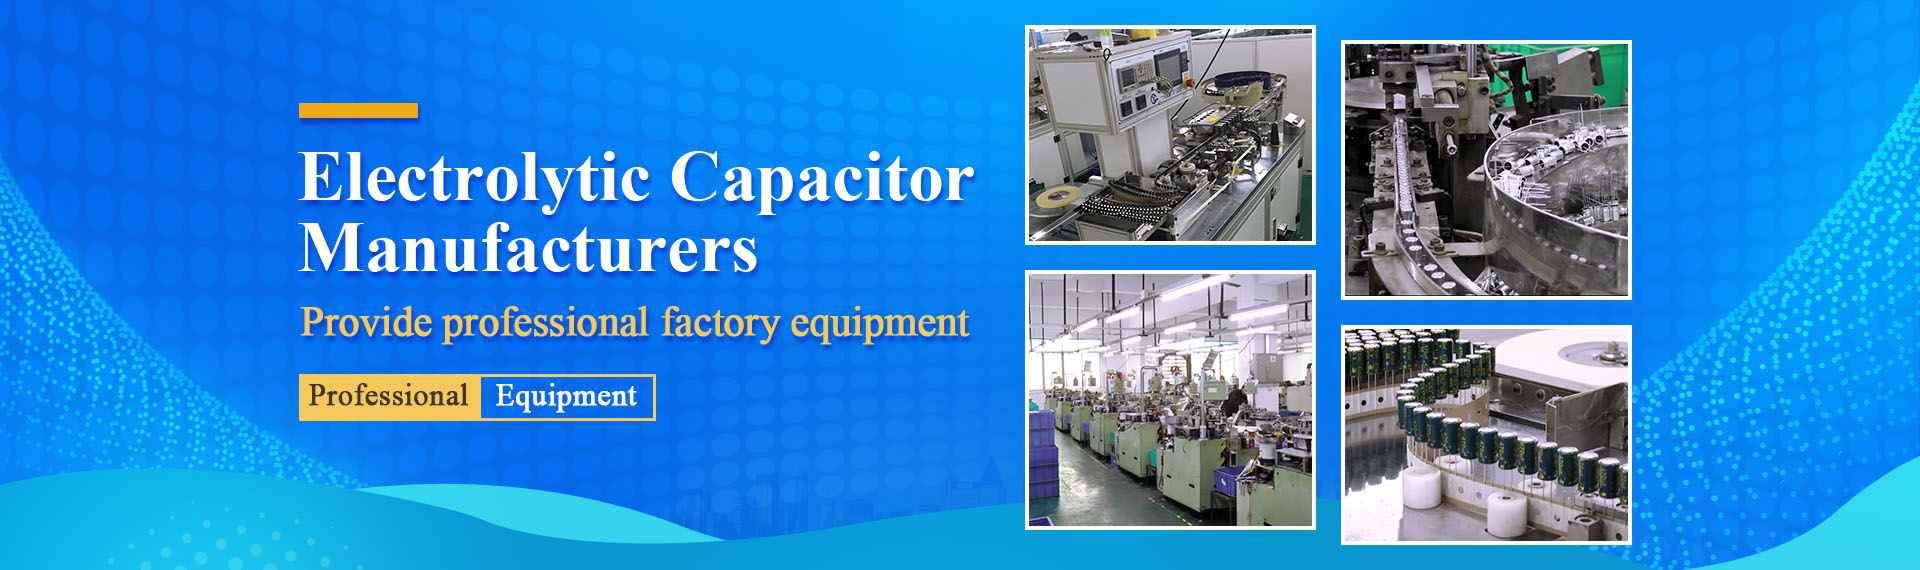 Our Company Capacitor Manufacturer